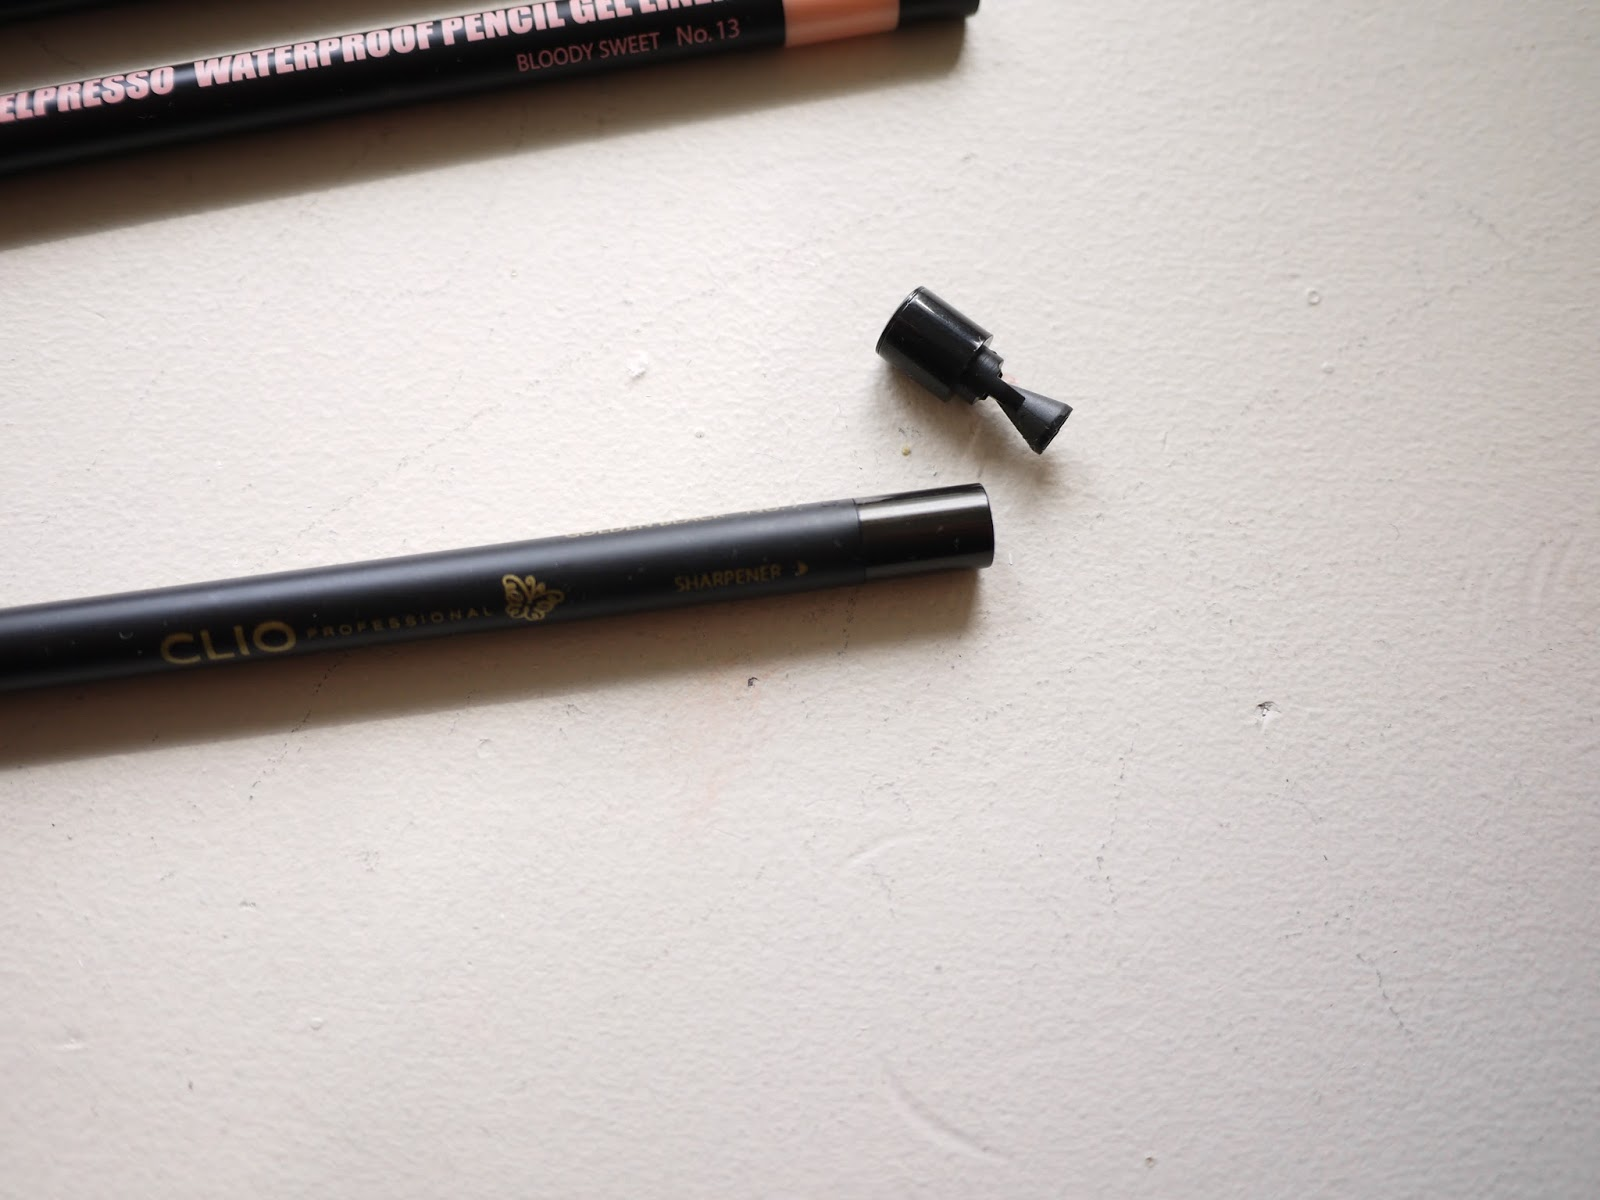 clio Gelpresso waterproof pencil gel liner golden black bloody sweet bloody angel swatch review eyeliners